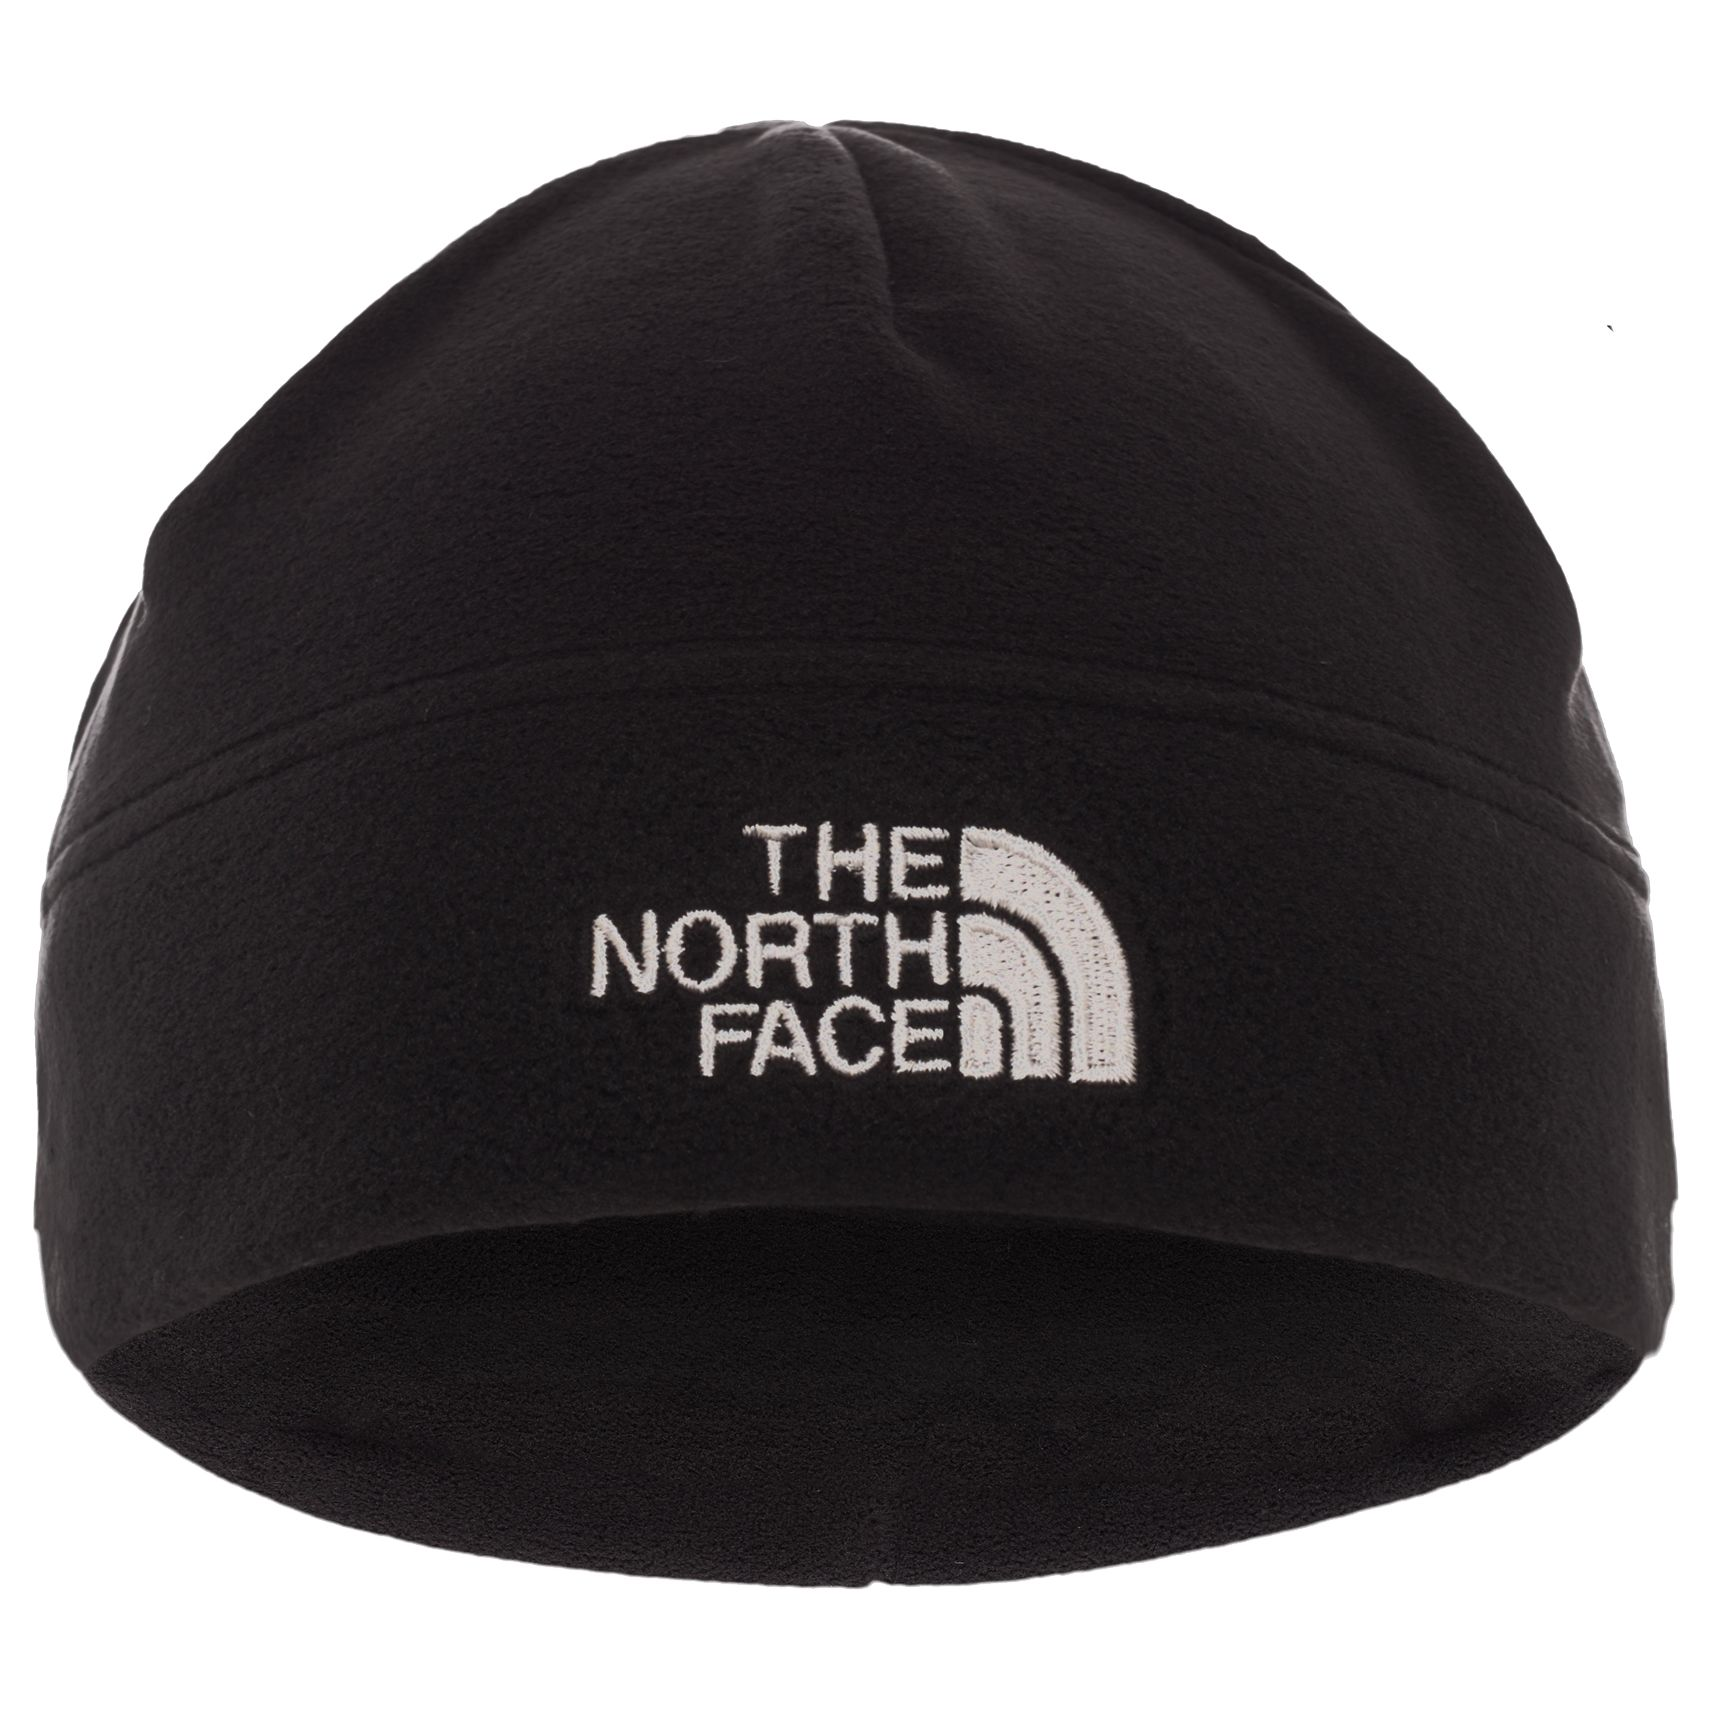 The North Face Flash Fleece Beanie Black At John Lewis Partners